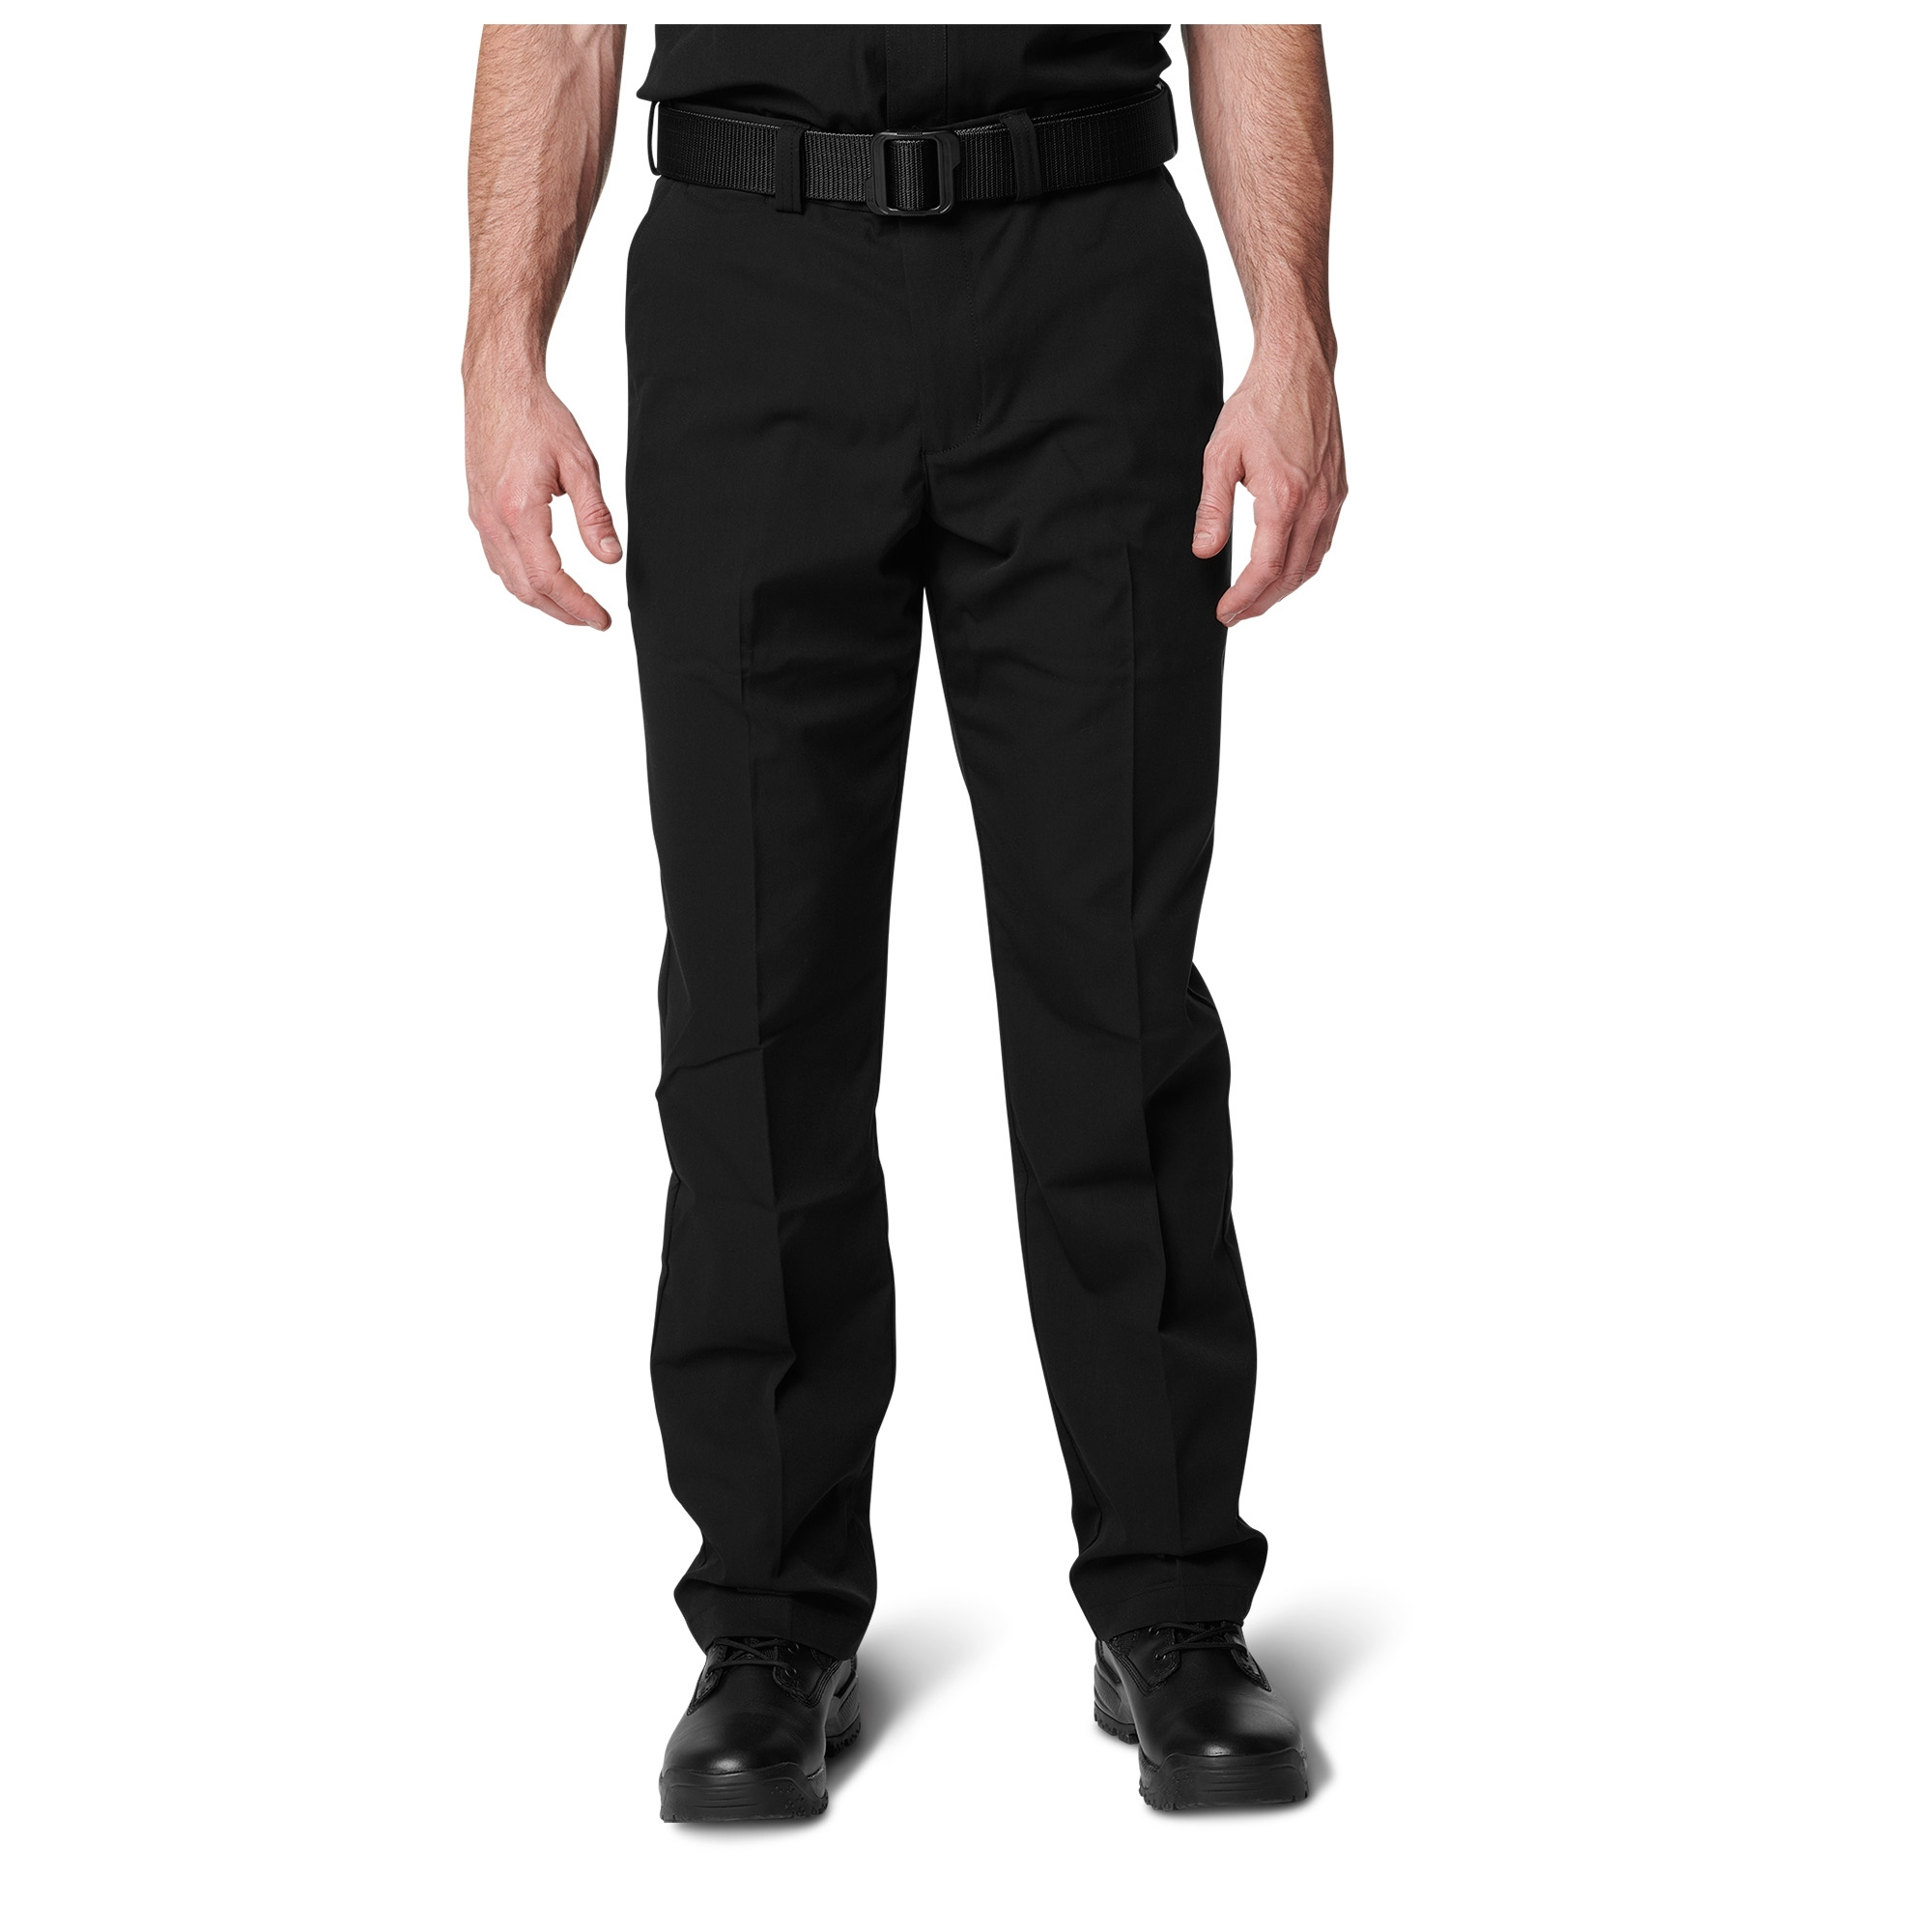 6e8a669794017 image of Class A Flex Tac Poly Wool Twill Pant with sku 888579206296